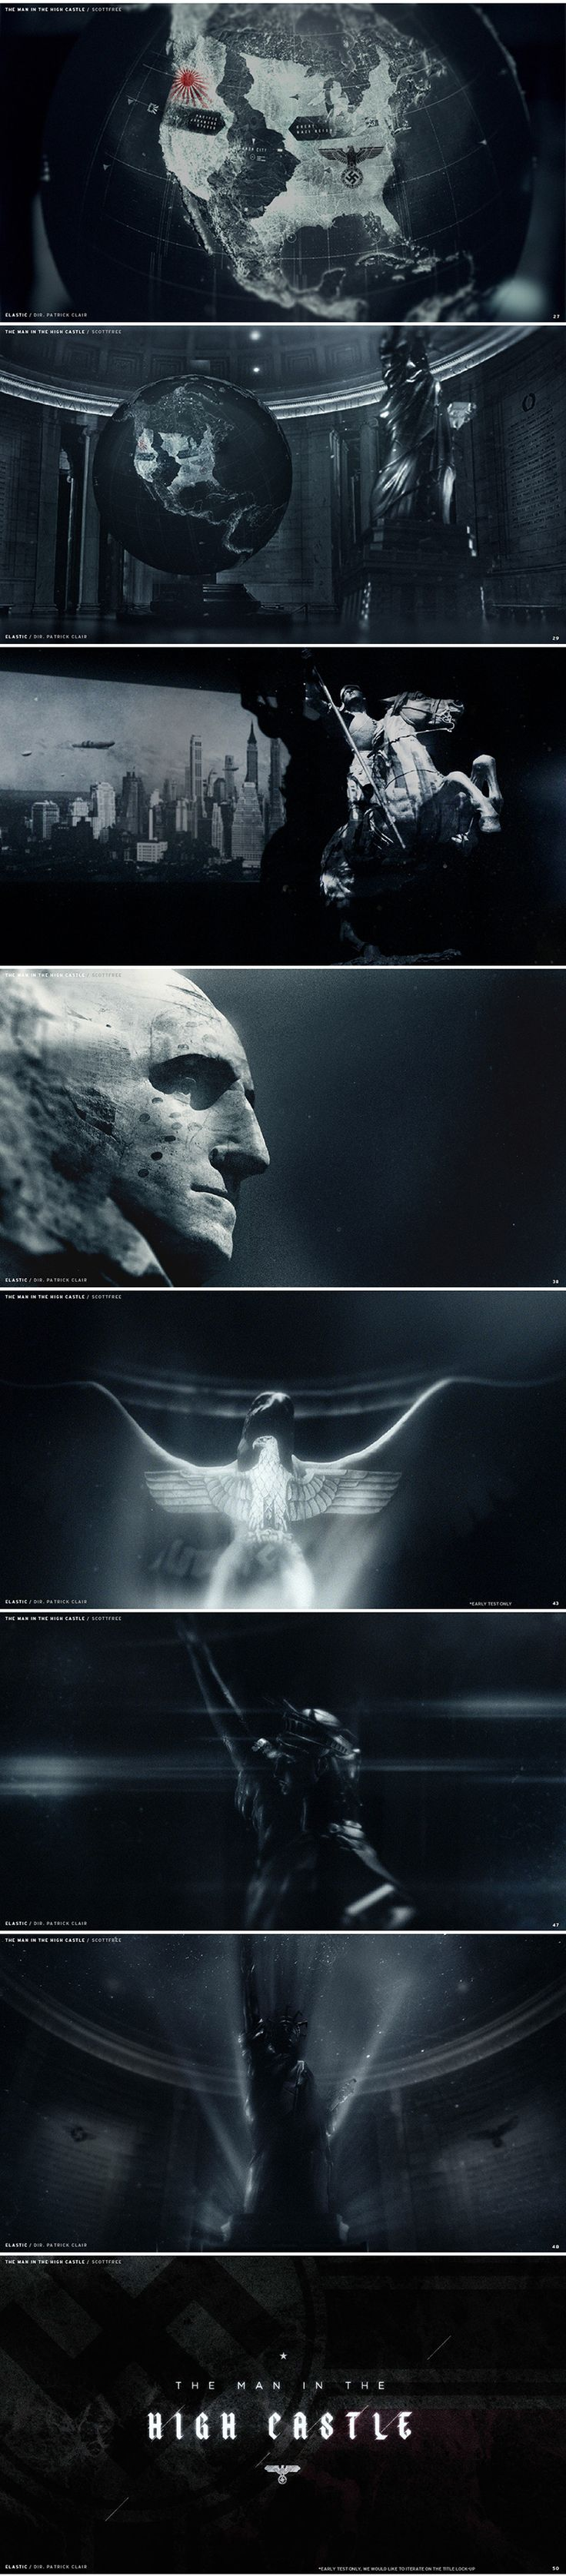 """""""The Man in the High Castle"""" (2015) - Title Sequence by Elastic"""